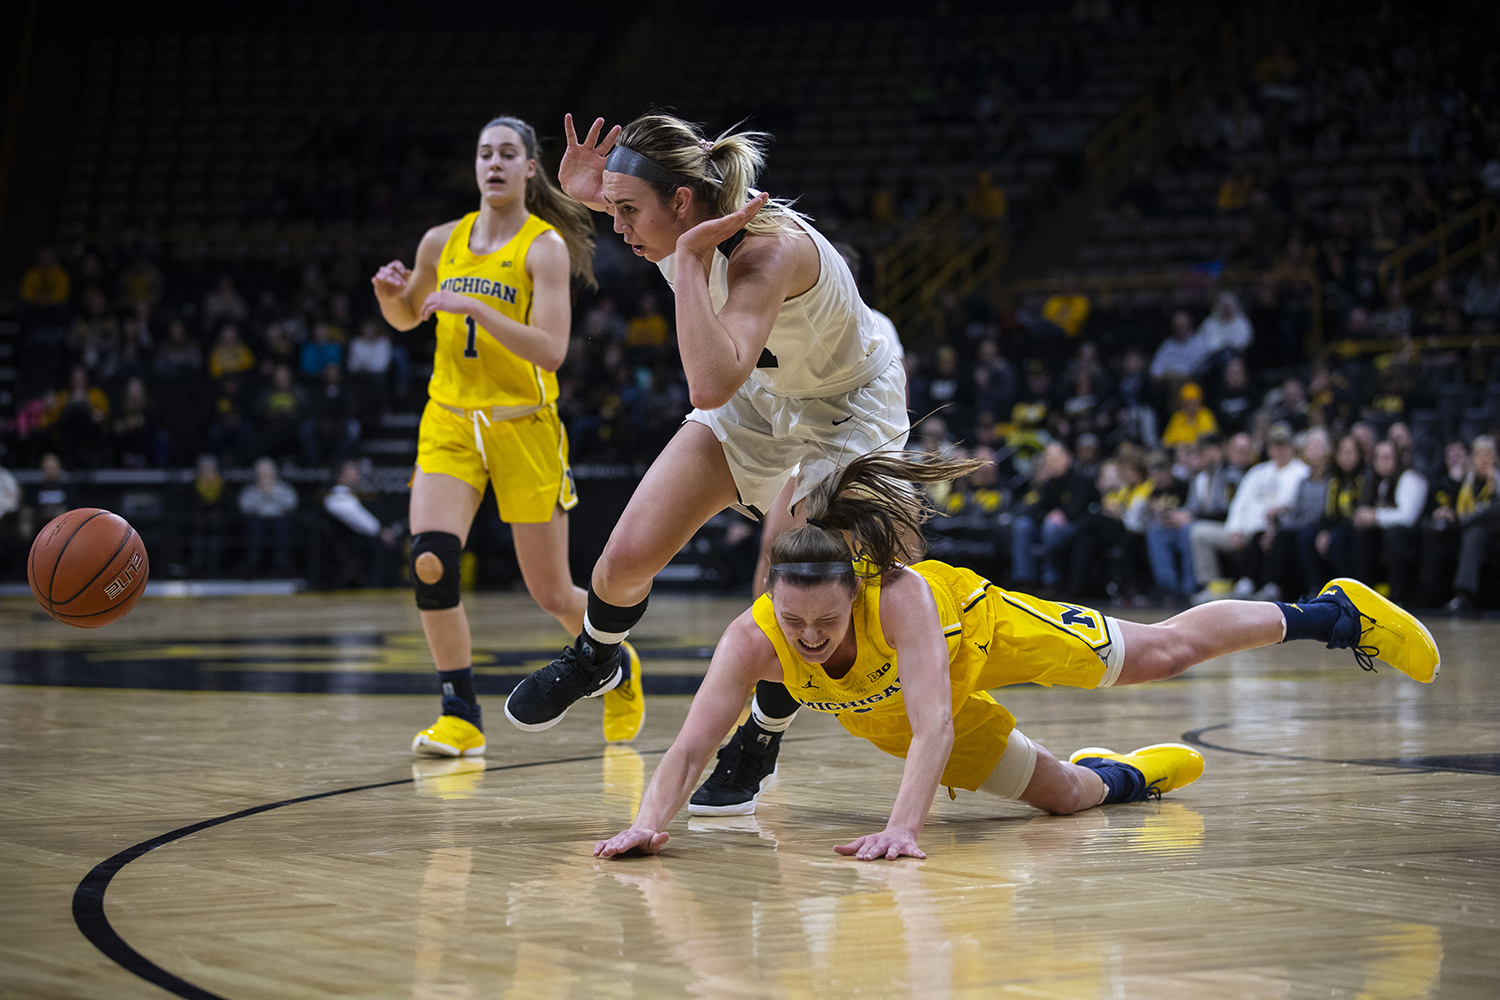 Iowa+forward+Hannah+Stewart+and+Michigan++during+the+Iowa%2FMichigan+women%27s+basketball+game+at+Carver-Hawkeye+Arena+on+Thursday%2C+January+17%2C+2019.+The+Hawkeyes+defeated+the+Wolverines%2C+75-61.+